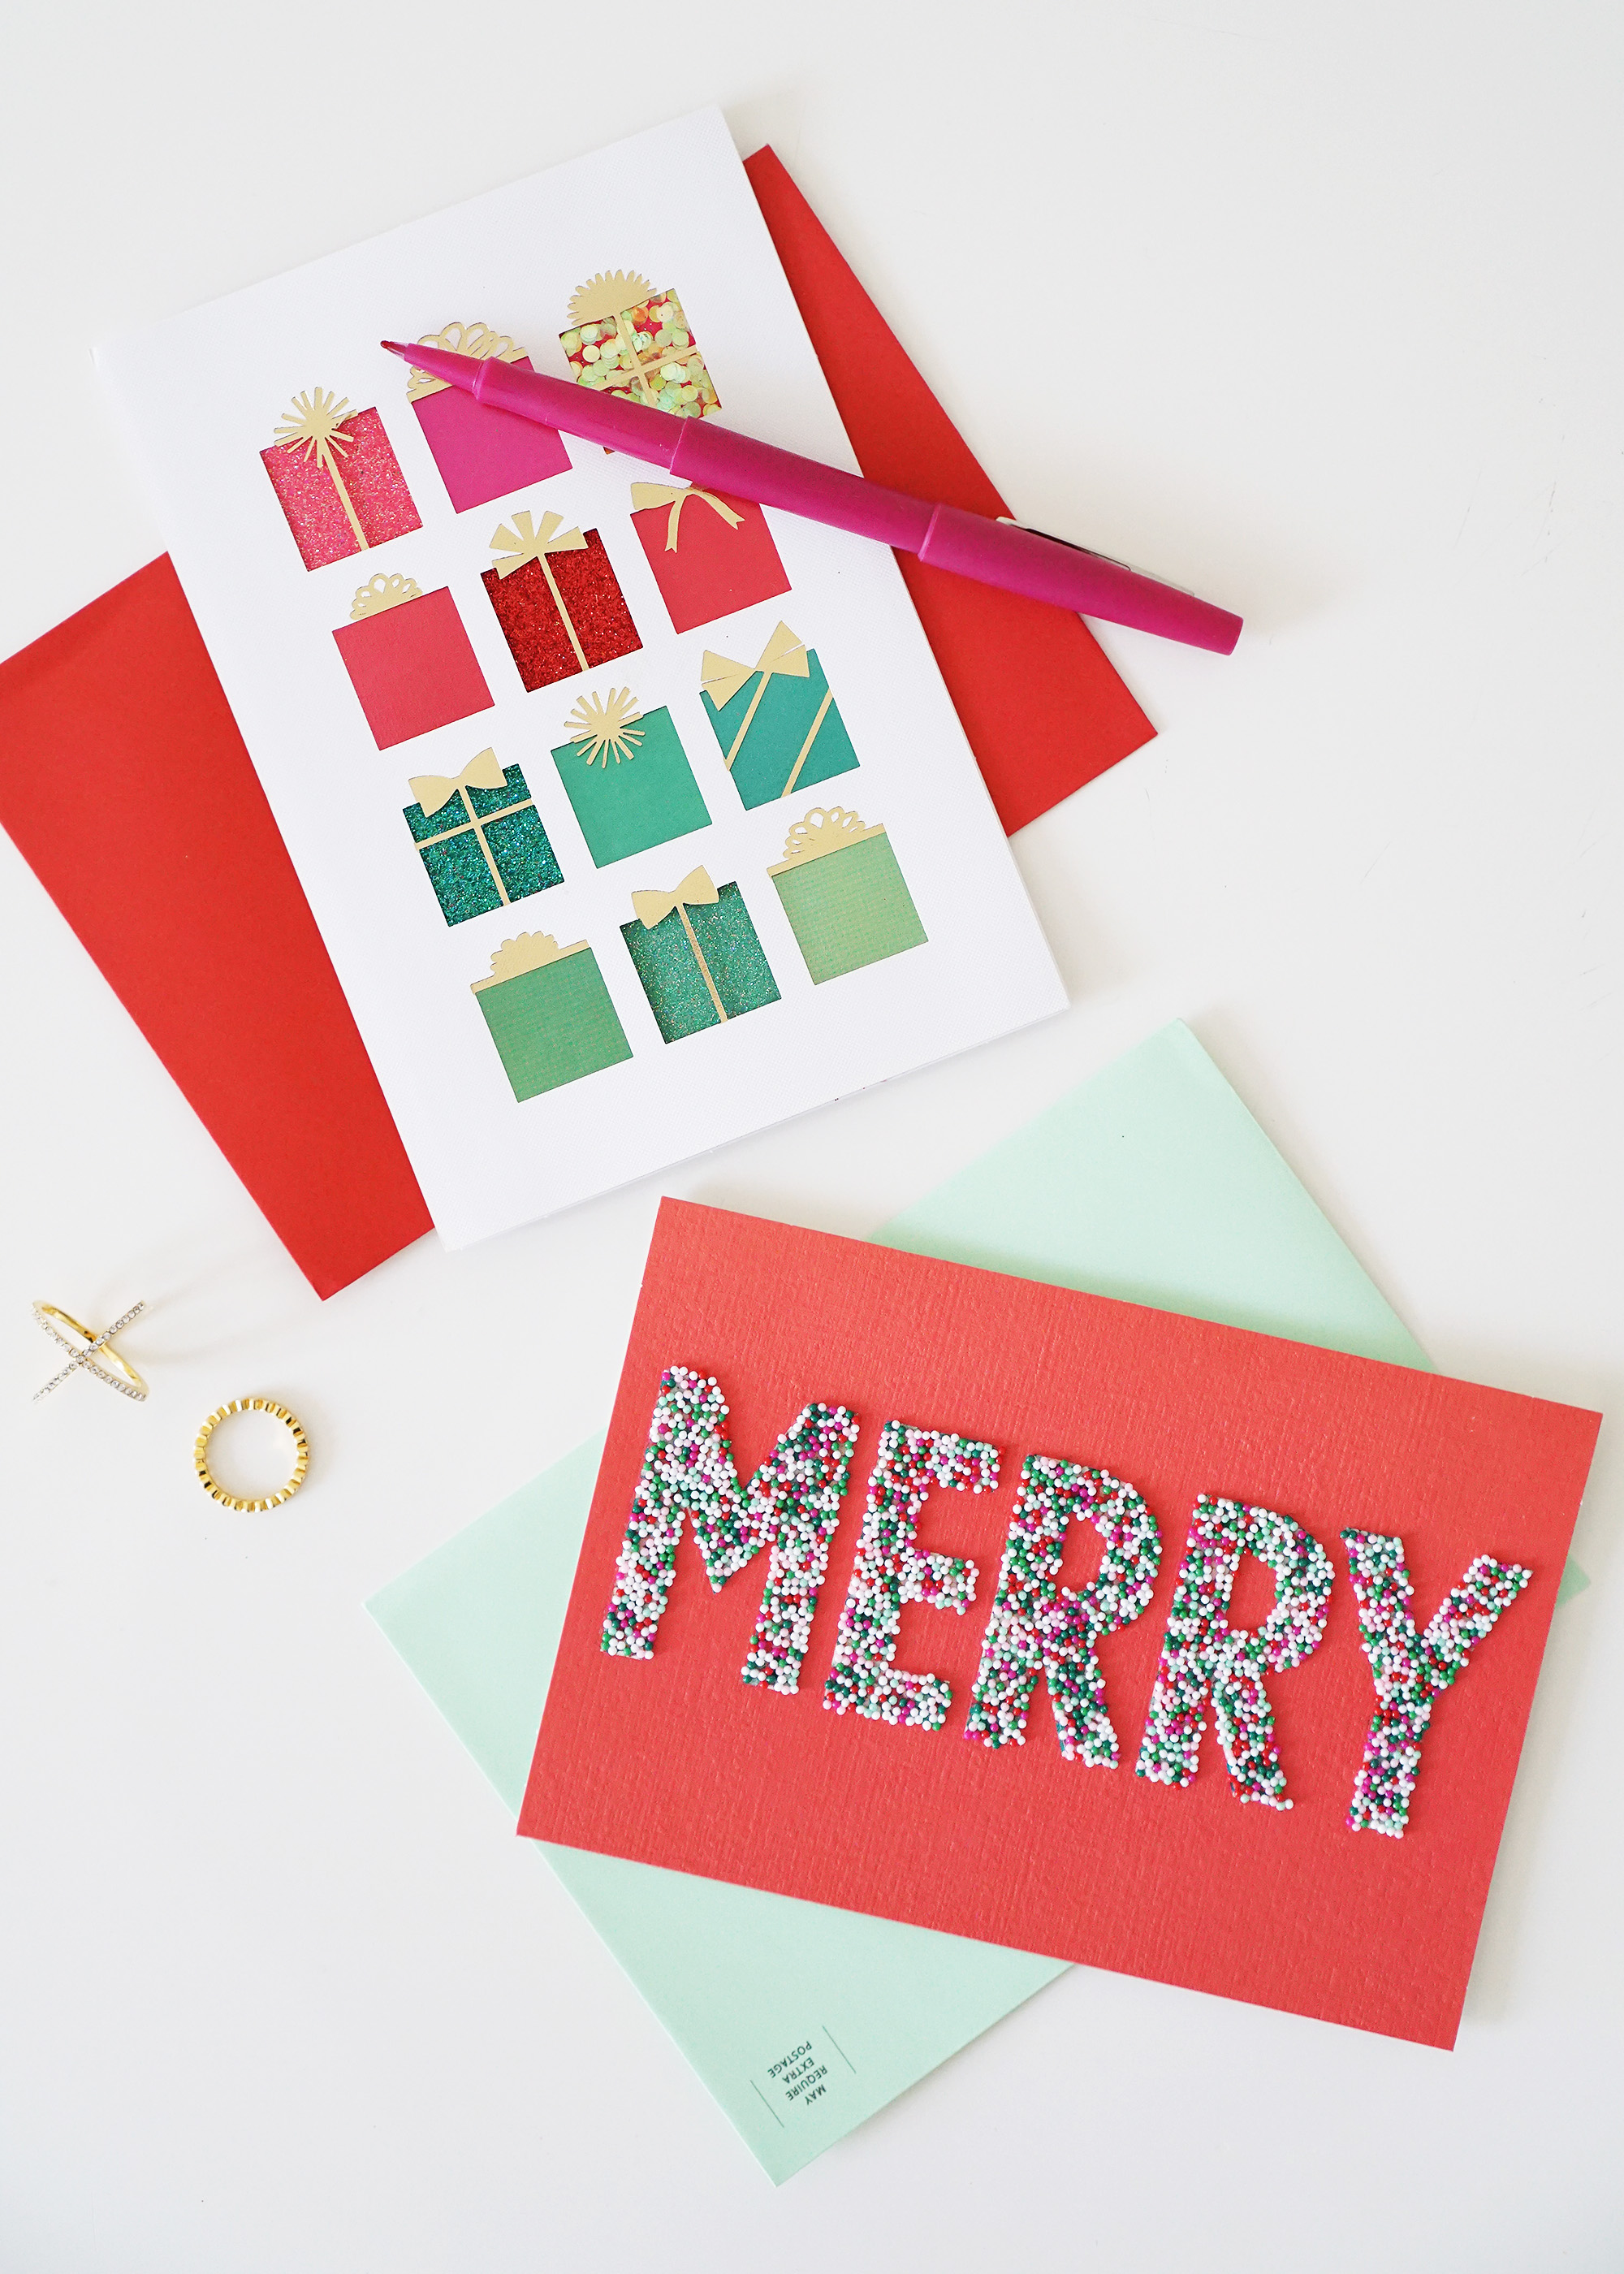 skirt-the-rules-hallmark-signature-holiday-cards-4